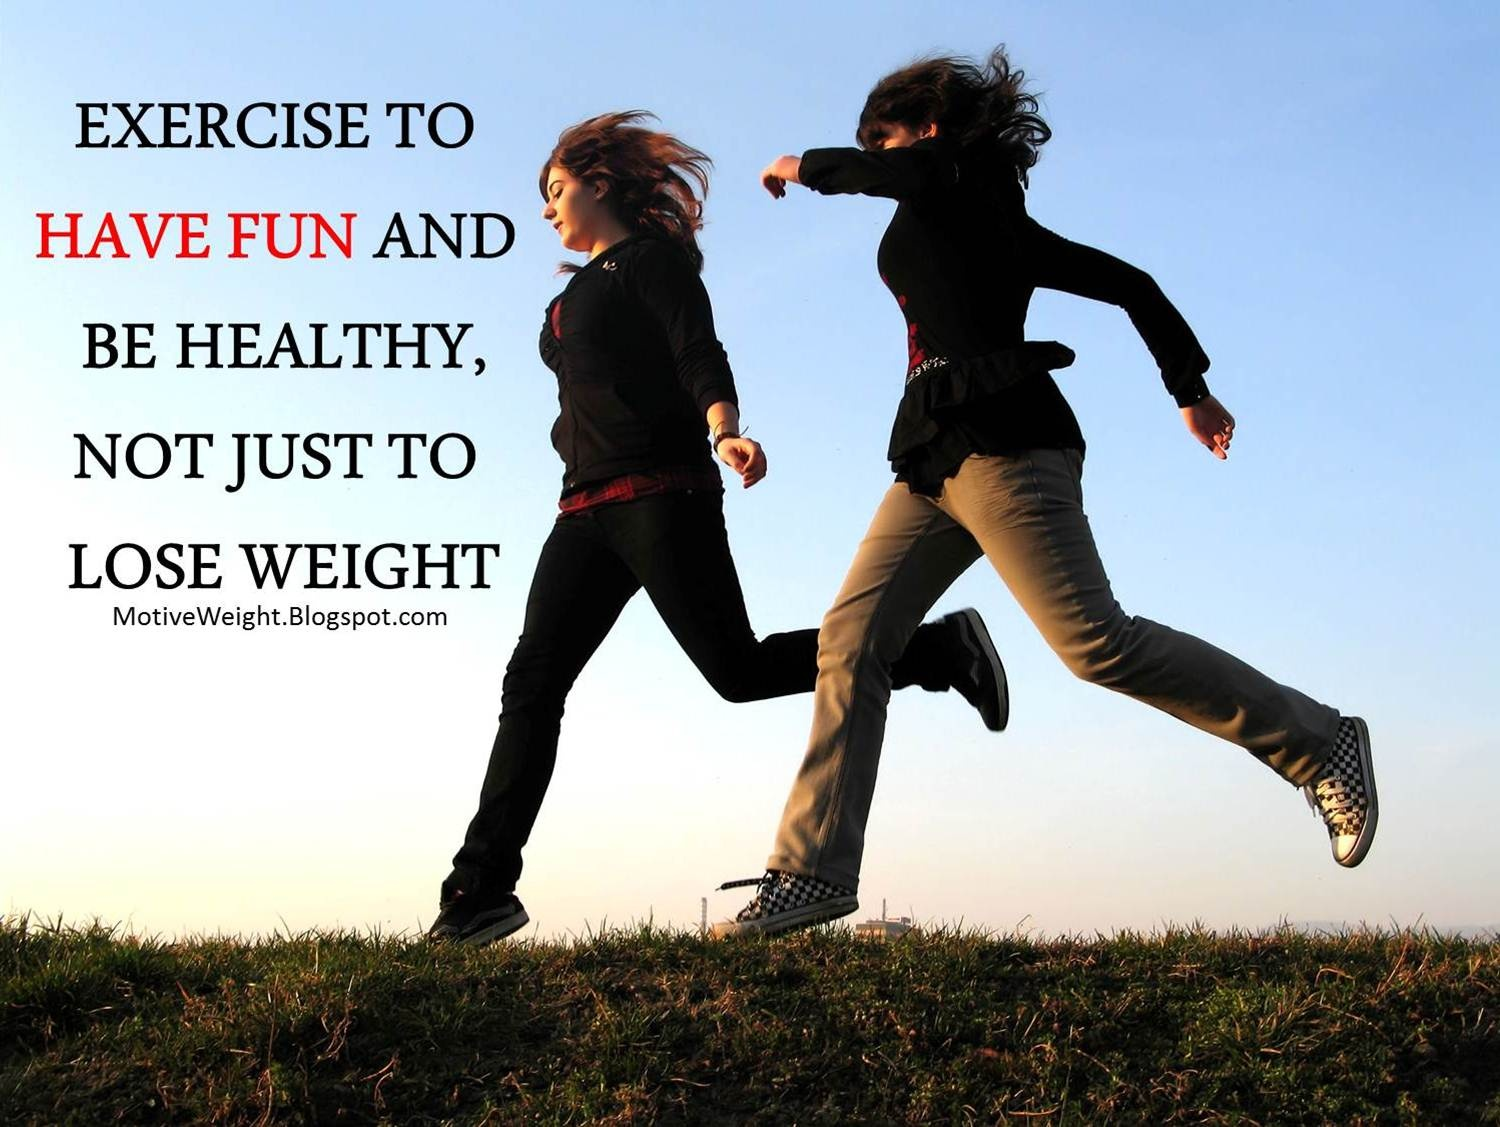 Exercise to have fun!